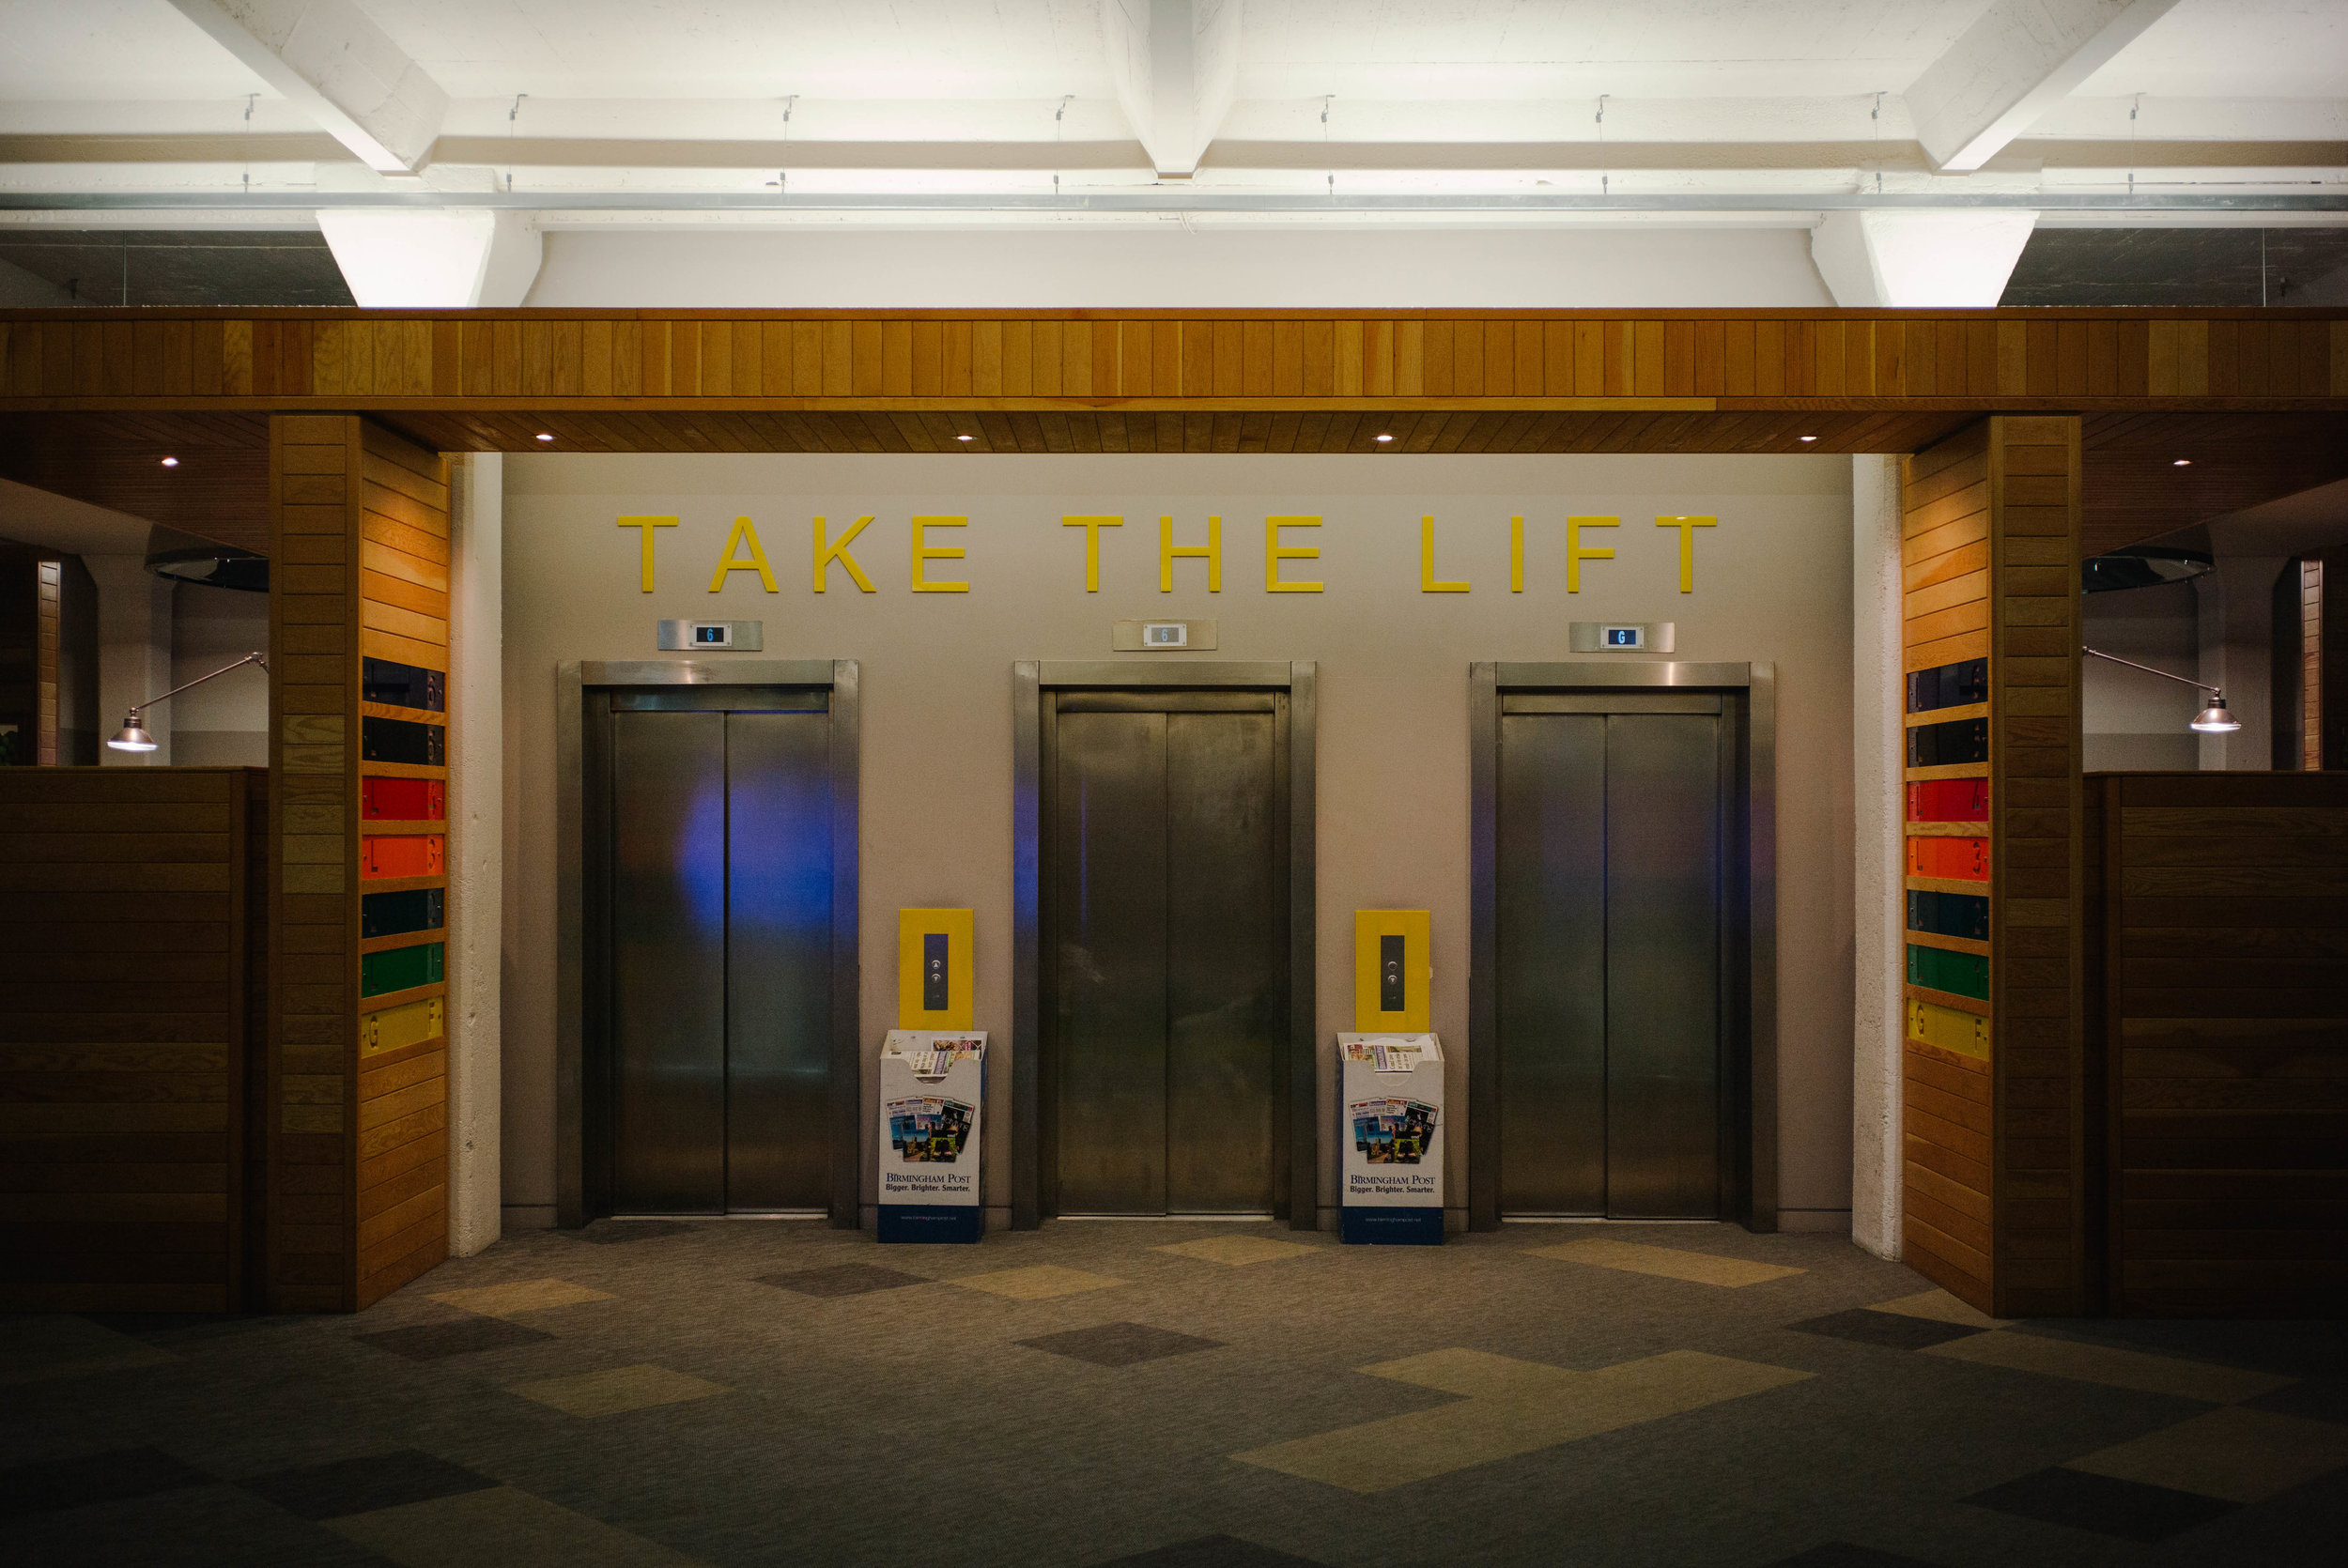 Take the lift - Clifford Darby 2017